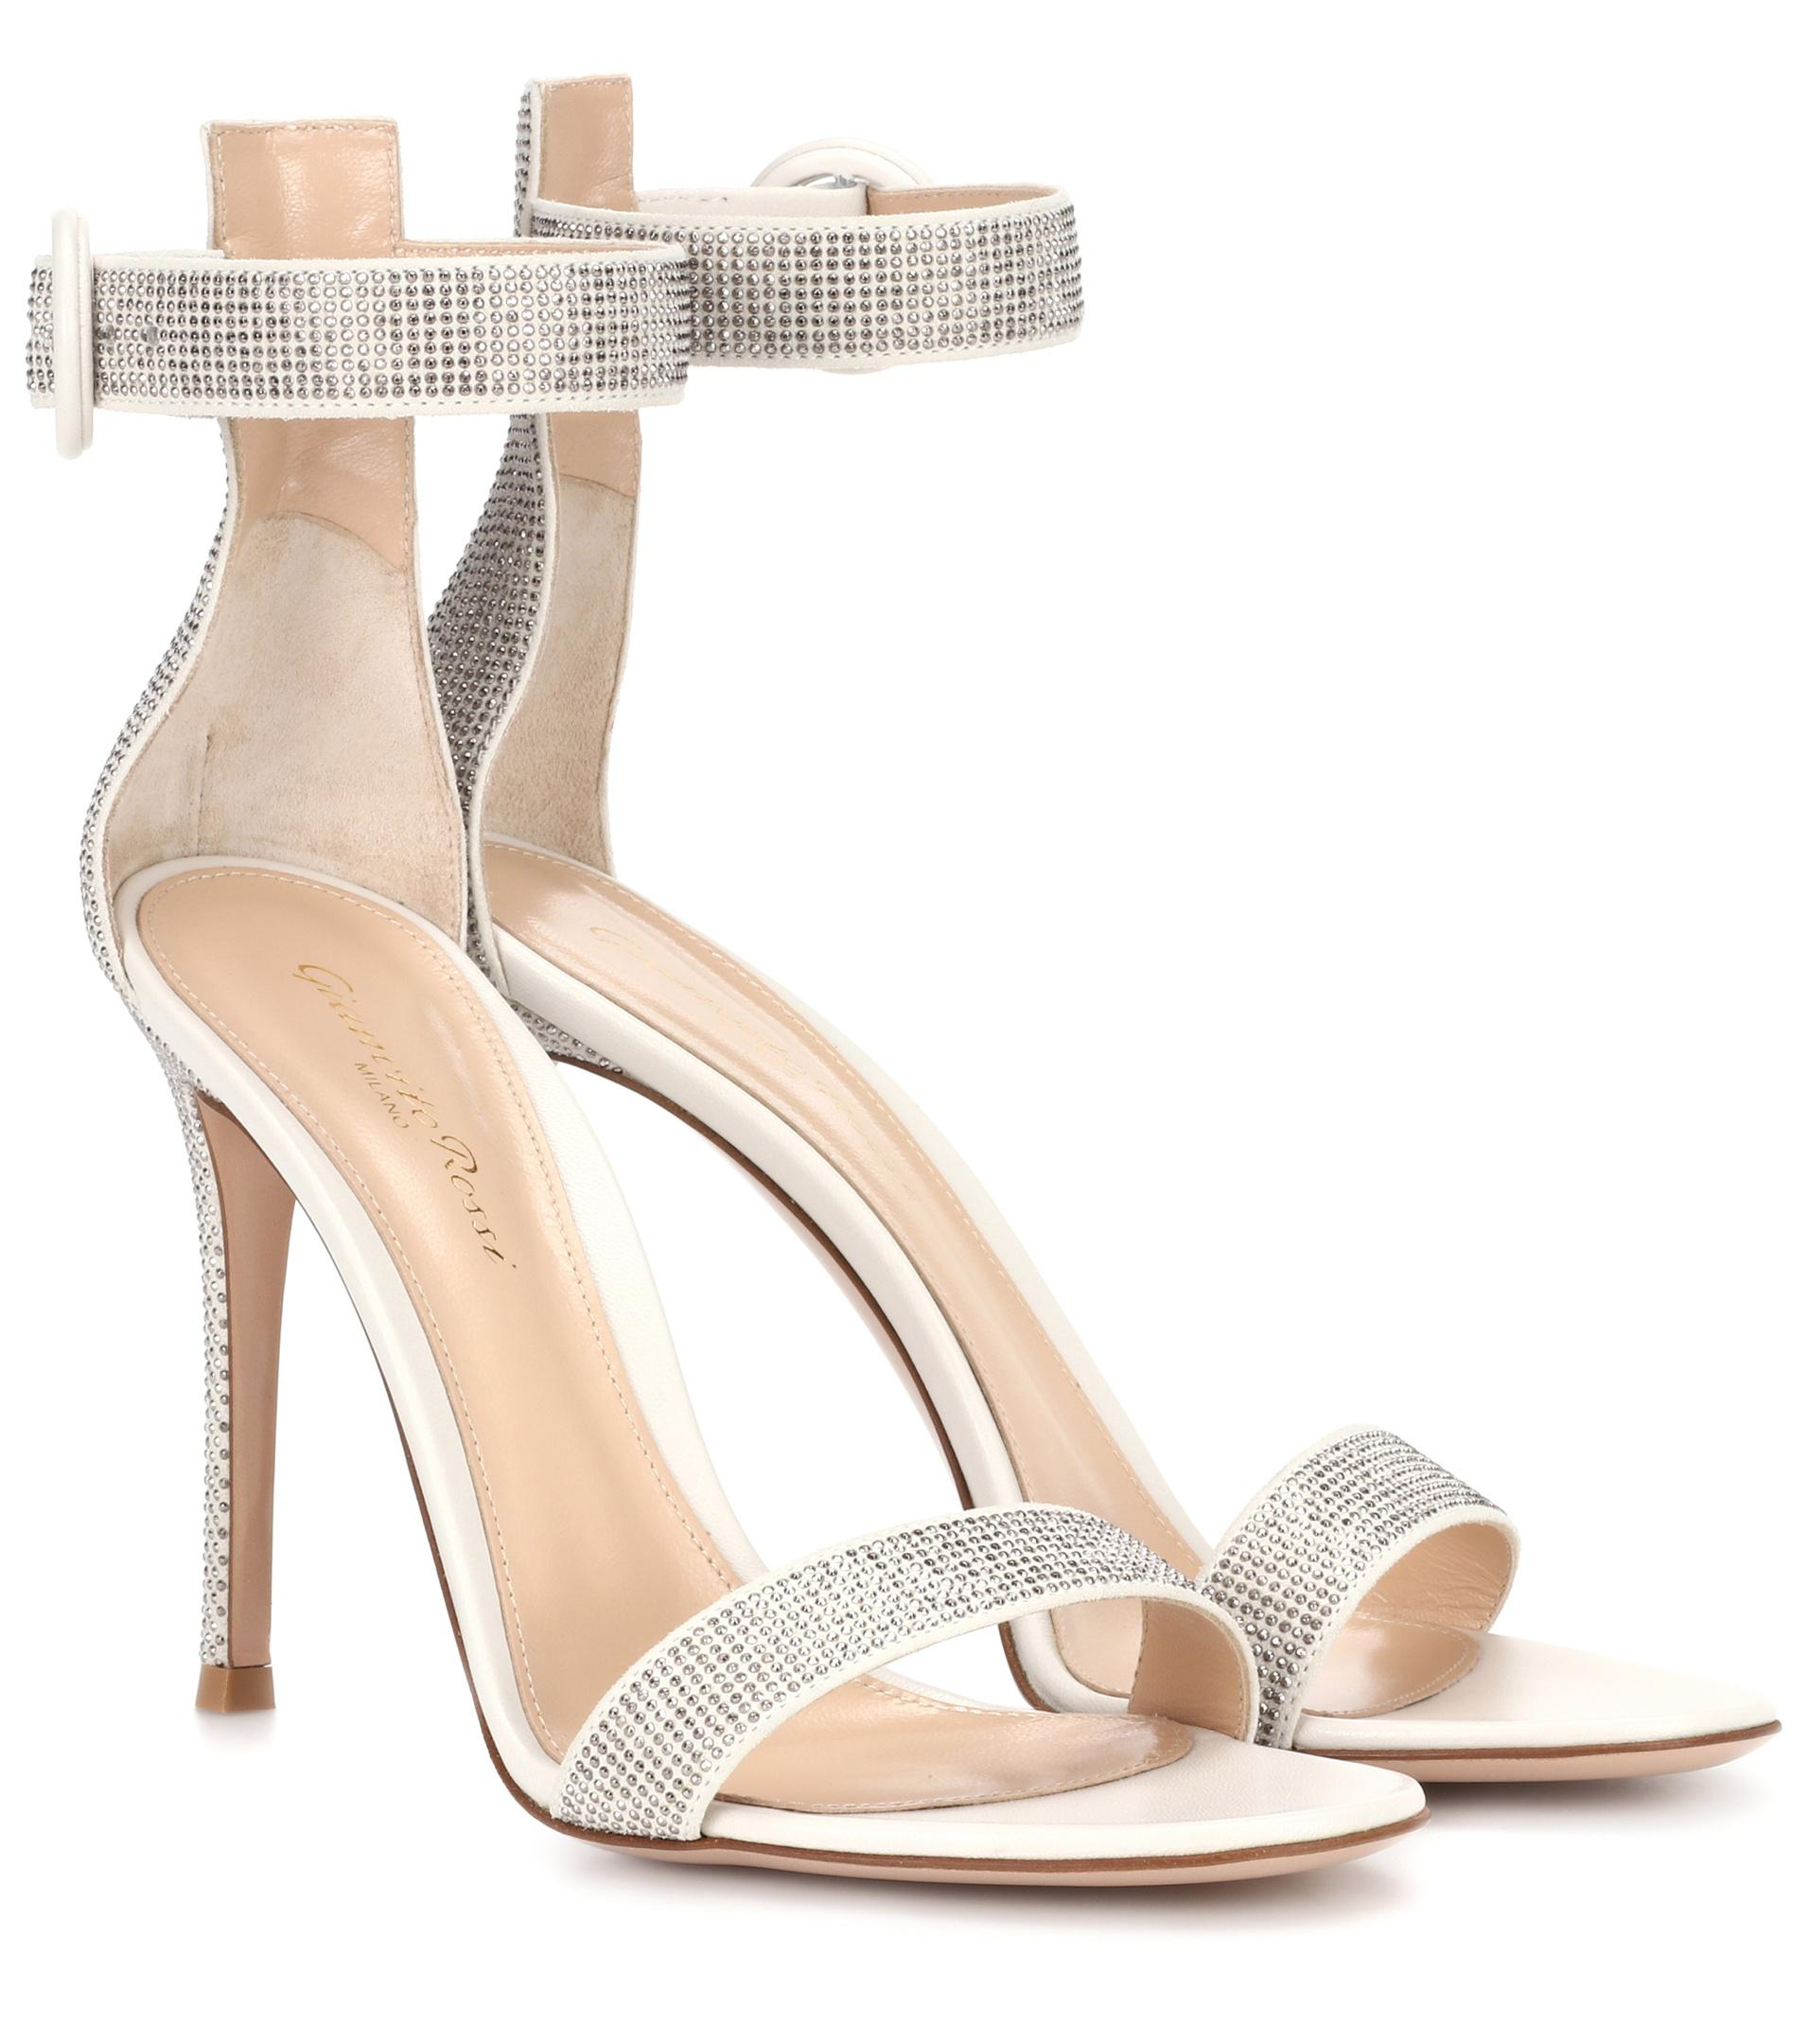 Gianvito Rossi Hailee suede sandals low cost online qSf6v